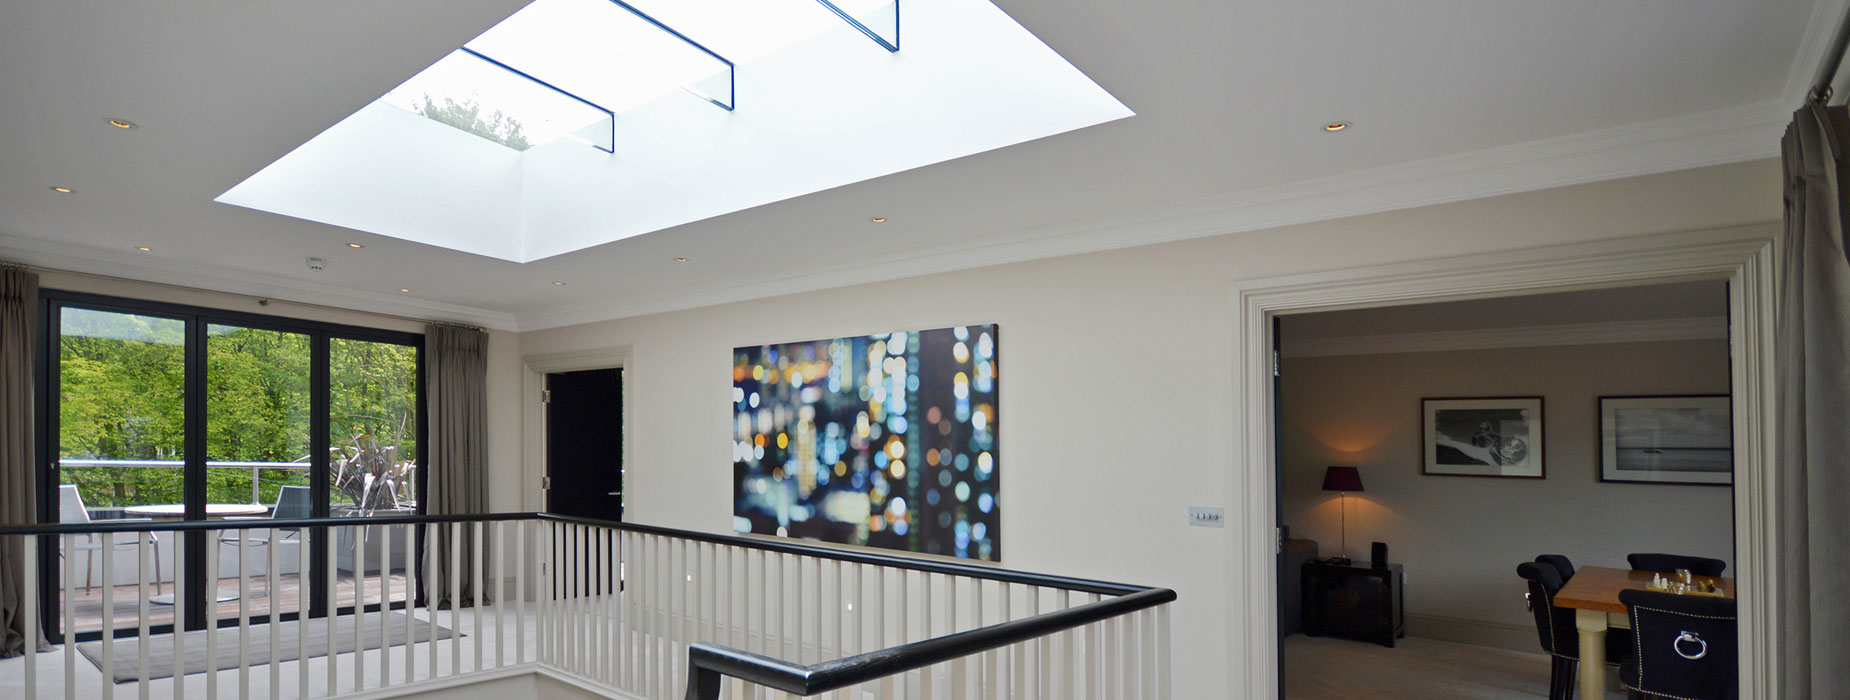 Modern large Diamond roof light installed in a traditional home bringing in lots of natural light in an area that would have otherwise been much darker.